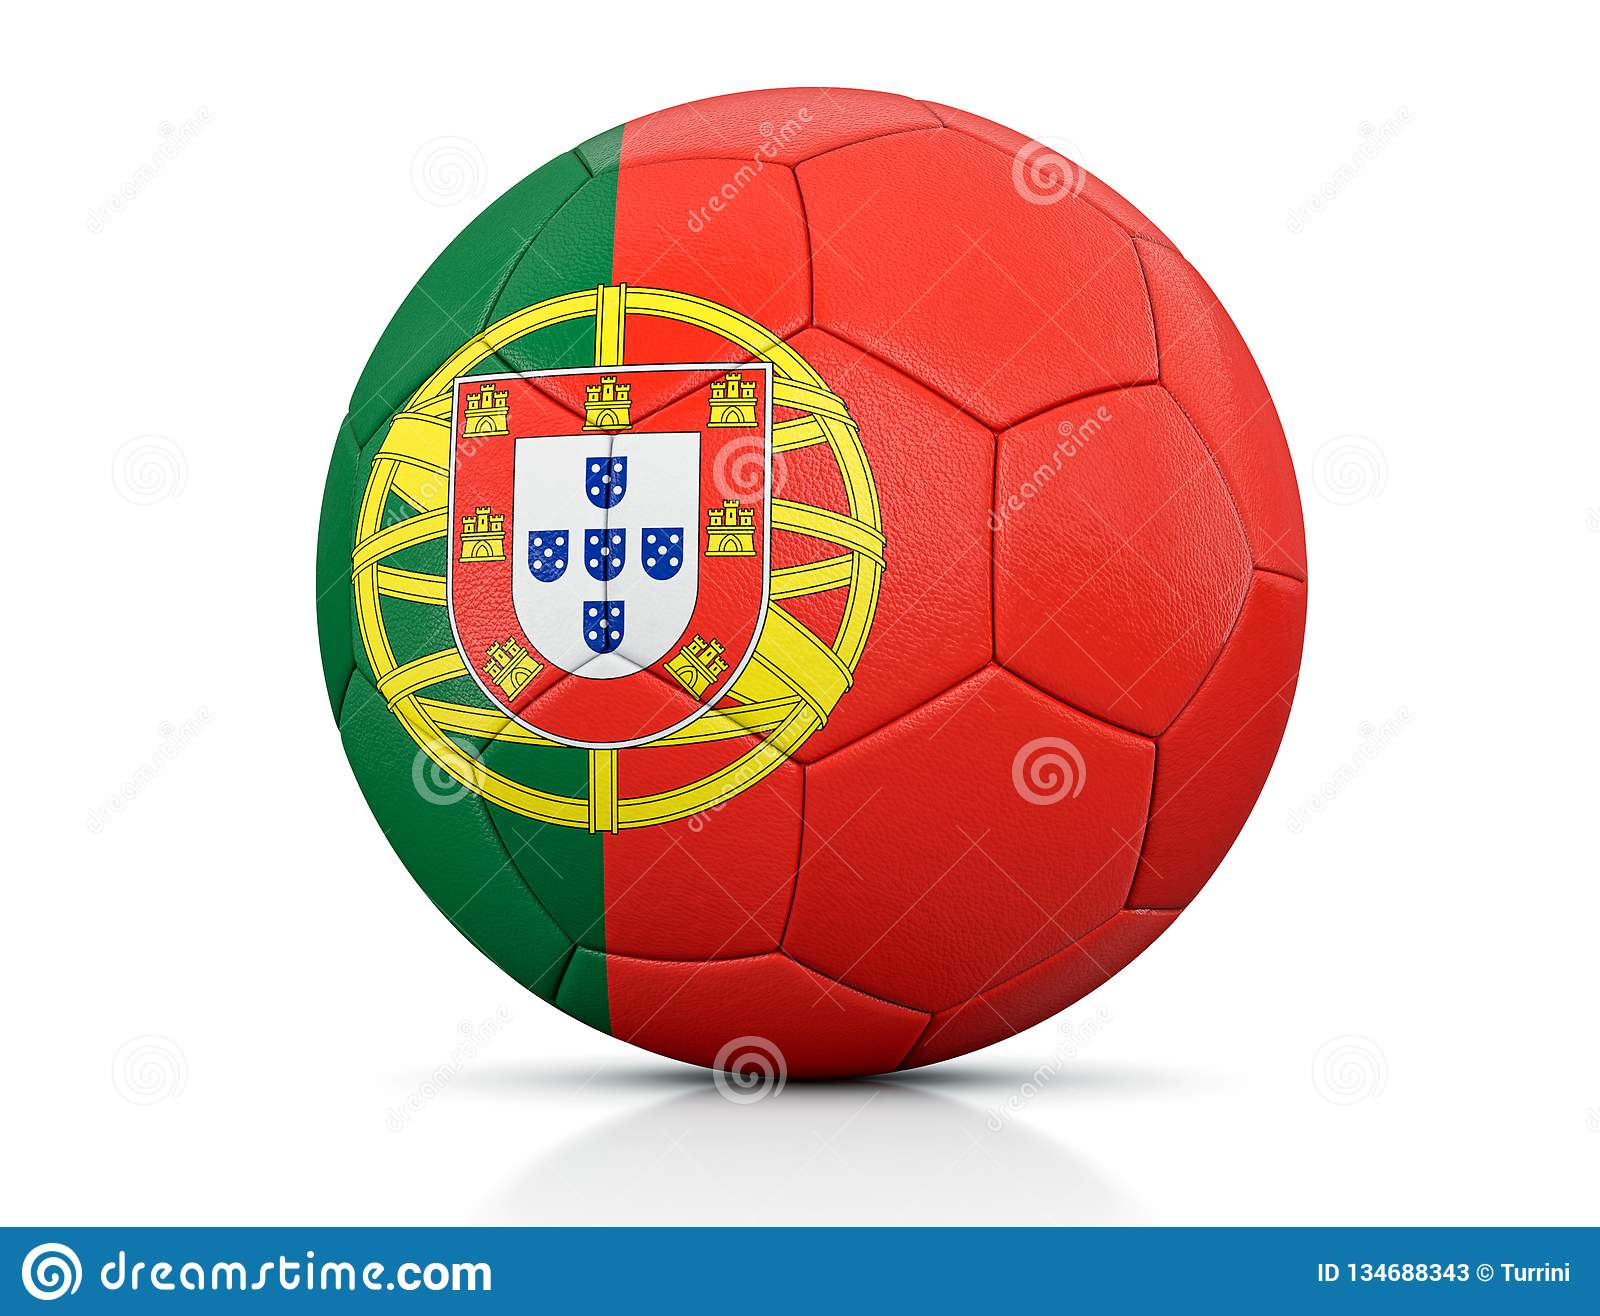 Soccer Ball, Classic Soccer Ball Painted With The Colors Of The Flag Of Portugal And Apparent ...